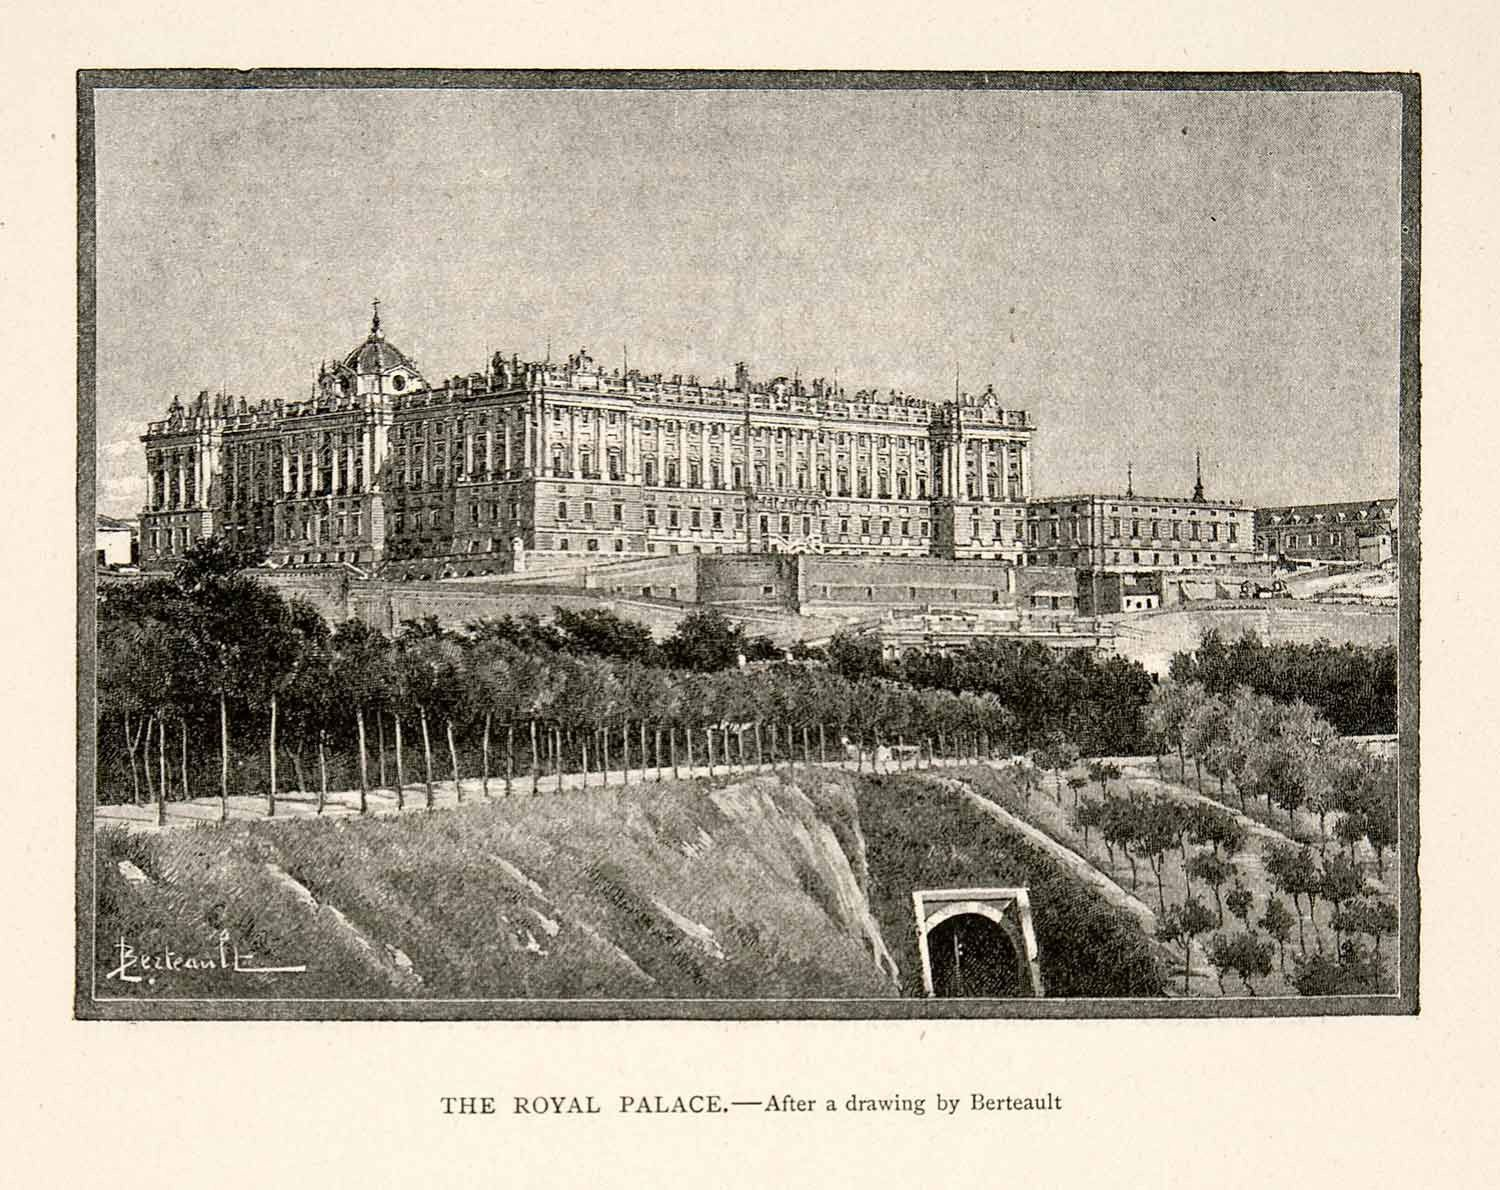 1894 Print Palacio Real De Madrid Spain Royal Palace Sabatini Gardens XGGC5